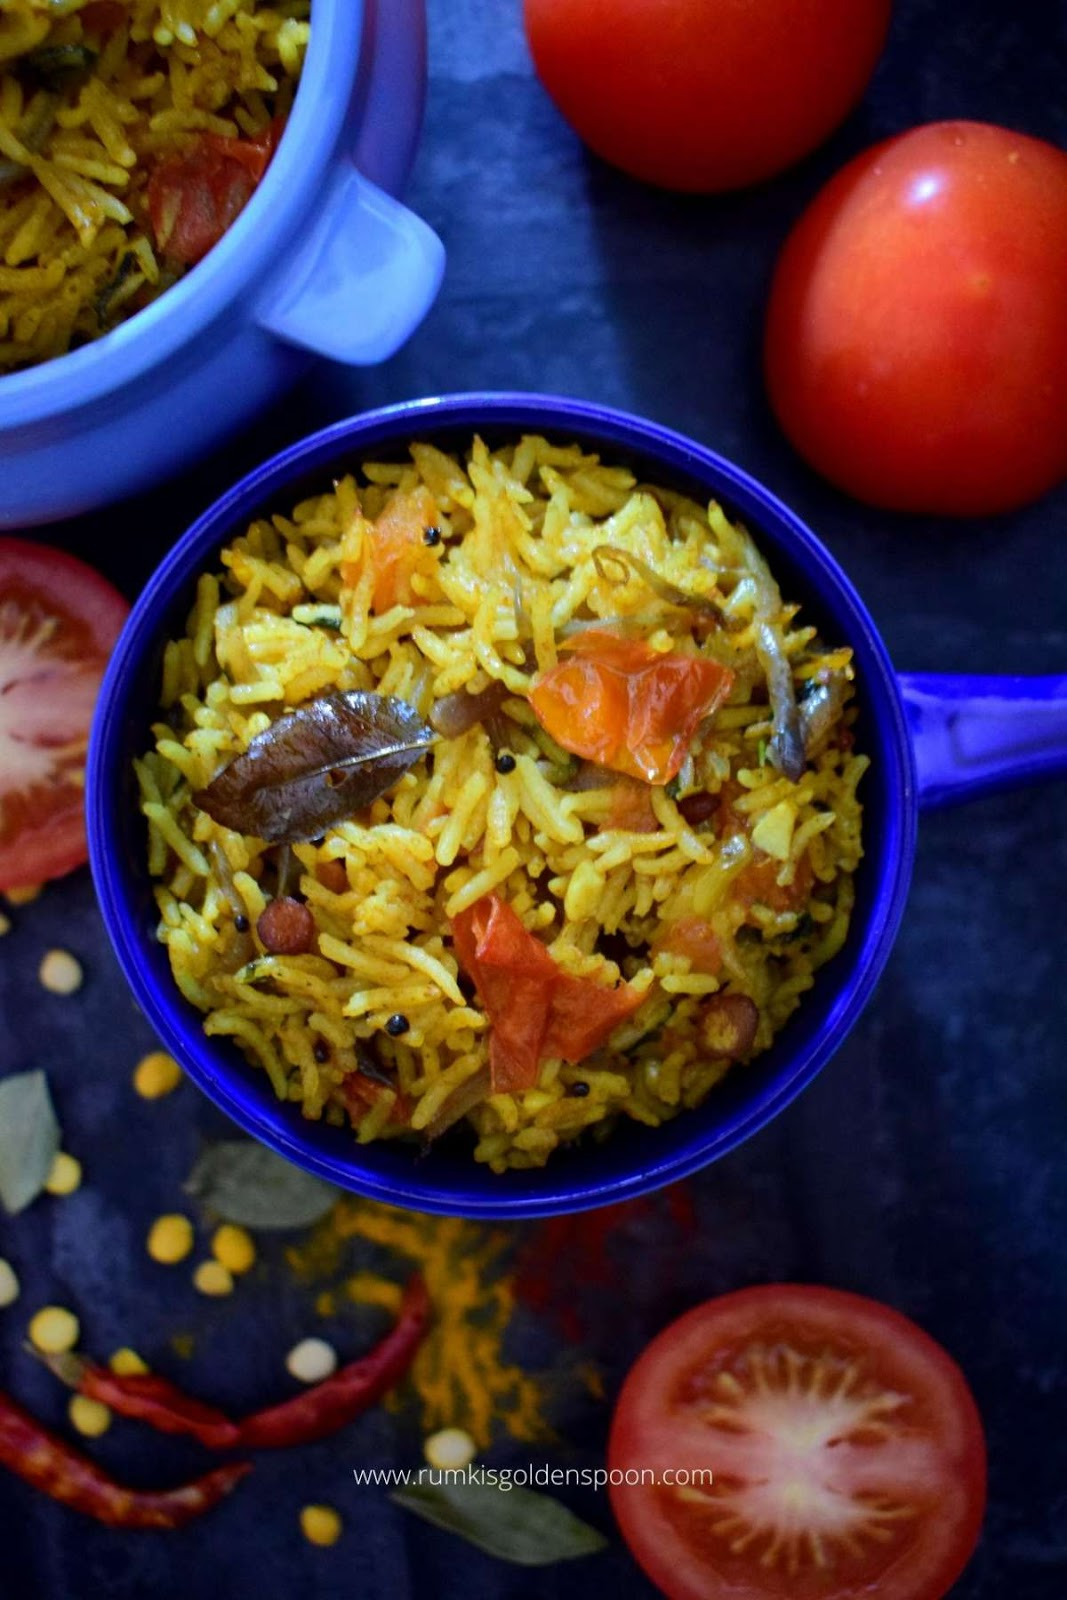 tomato rice, tomato rice recipe, recipe for tomato rice, tomato with rice, how to make tomato rice, how make tomato rice, tomato rice how to make, tomato rice Indian, tomato rice south Indian style, tomato rice south Indian, south indian tomato rice recipe, south Indian style tomato rice, thakkali rice, thakali rice, how to make thakkali rice, thakkali sadam, what is tomato rice, rice recipes, rice recipe, with rice recipe, rice recipe vegan, rice recipe vegetarian, rice recipes veg, rice recipe with vegetables, rice recipe Indian, rice recipes indian, Indian rice recipe easy, tomato rice recipe Indian, tomato recipe Indian, tomato rice recipe easy, one pot tomato rice, Rumki's Golden Spoon